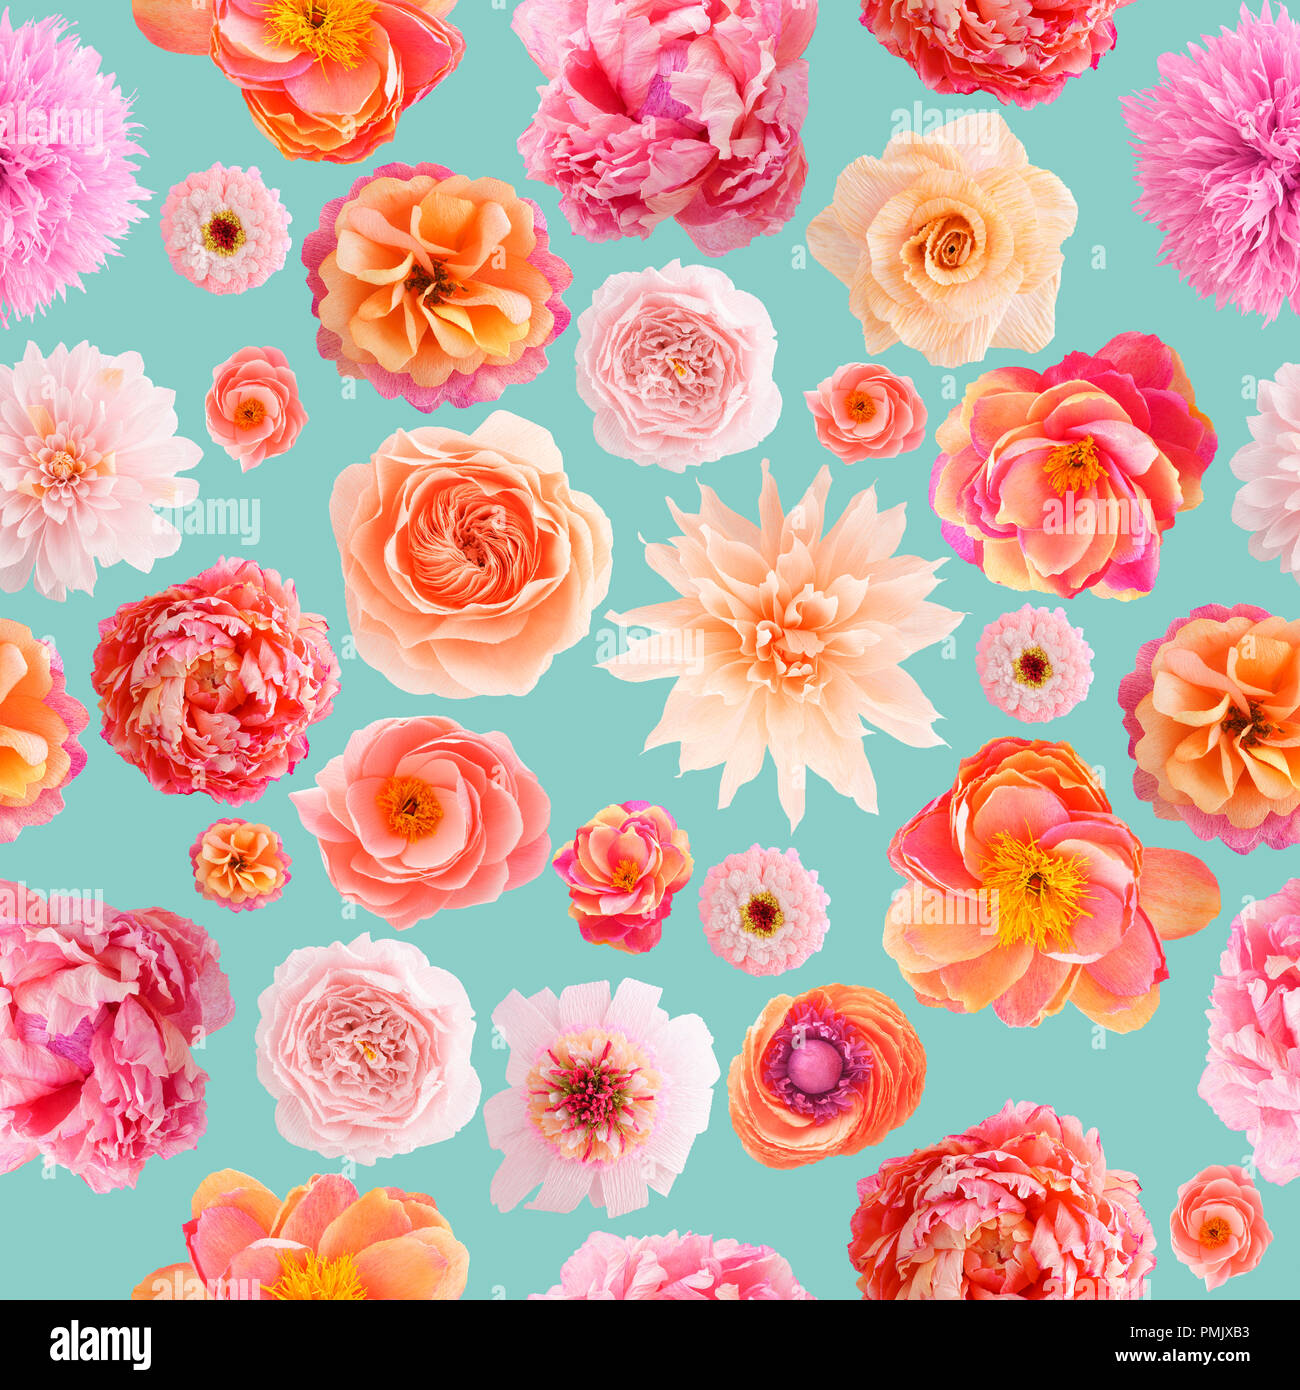 Crepe paper flowers stock photos crepe paper flowers stock images seamless pattern with handmade crepe paper flowers on turquoise colored background stock image mightylinksfo